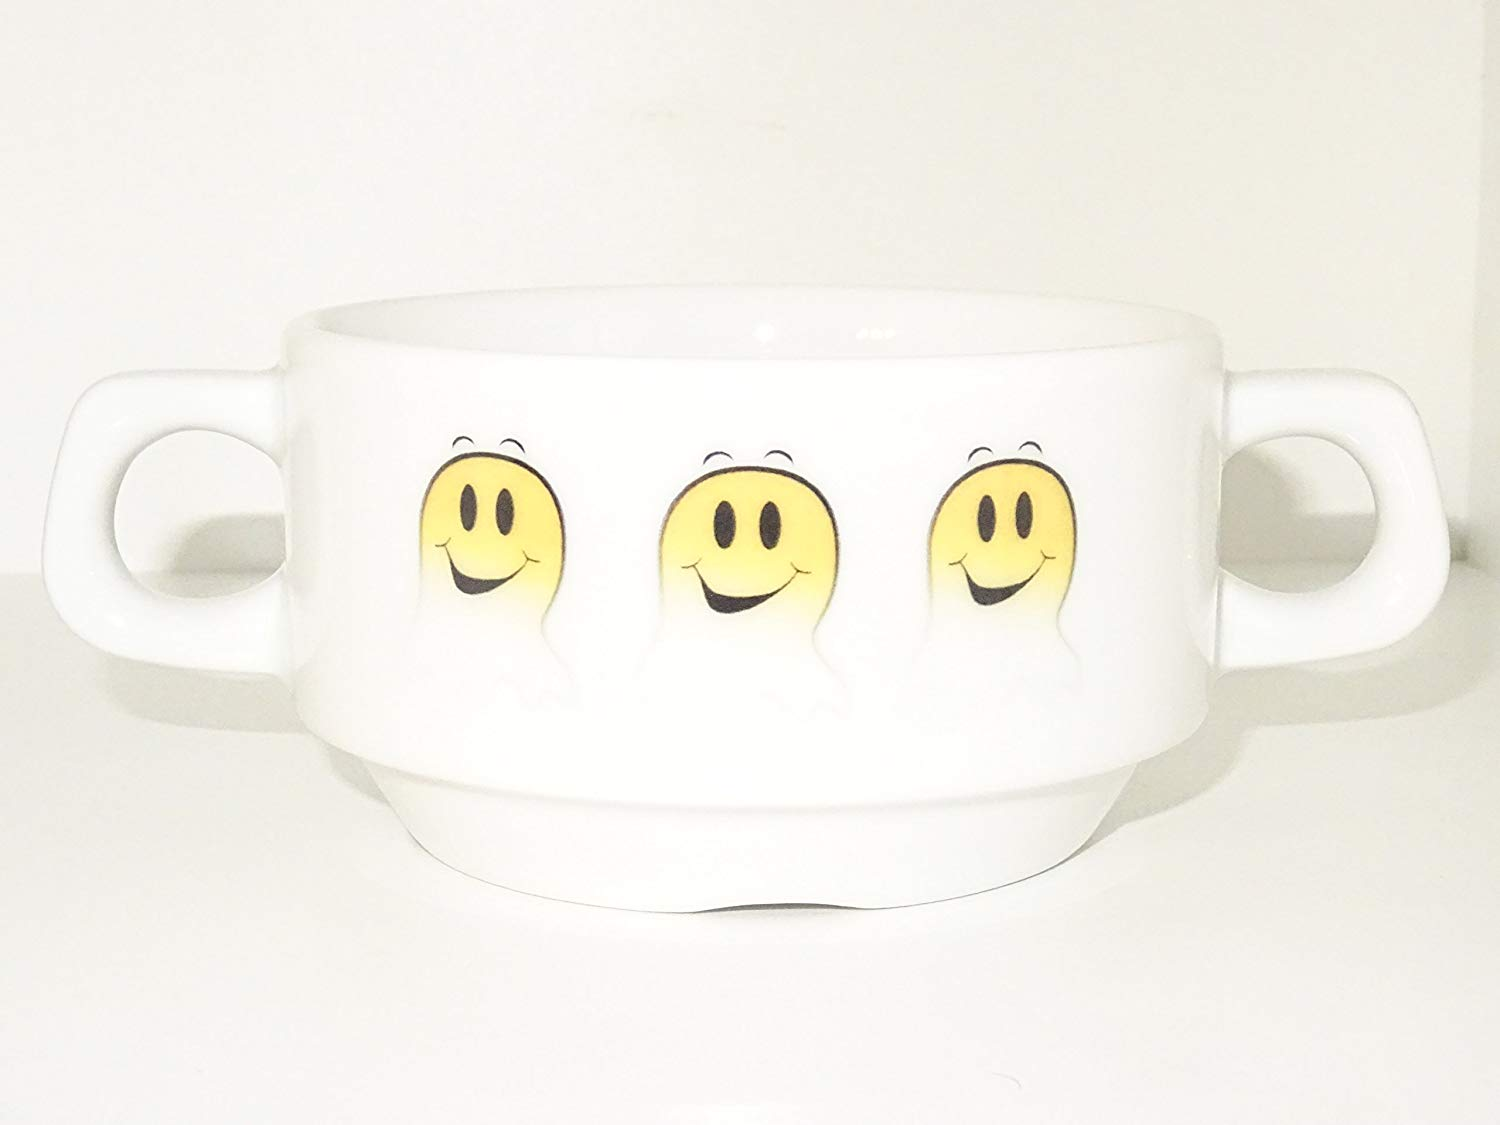 Soup Bowl 20, 1 pcs, Ghost Smiley Soup Bowl Small Baby Child Kids, Bottom, Hidden Message, Secret Message, Animal, Cartoon, Cute Animals, Kids, Porcelain